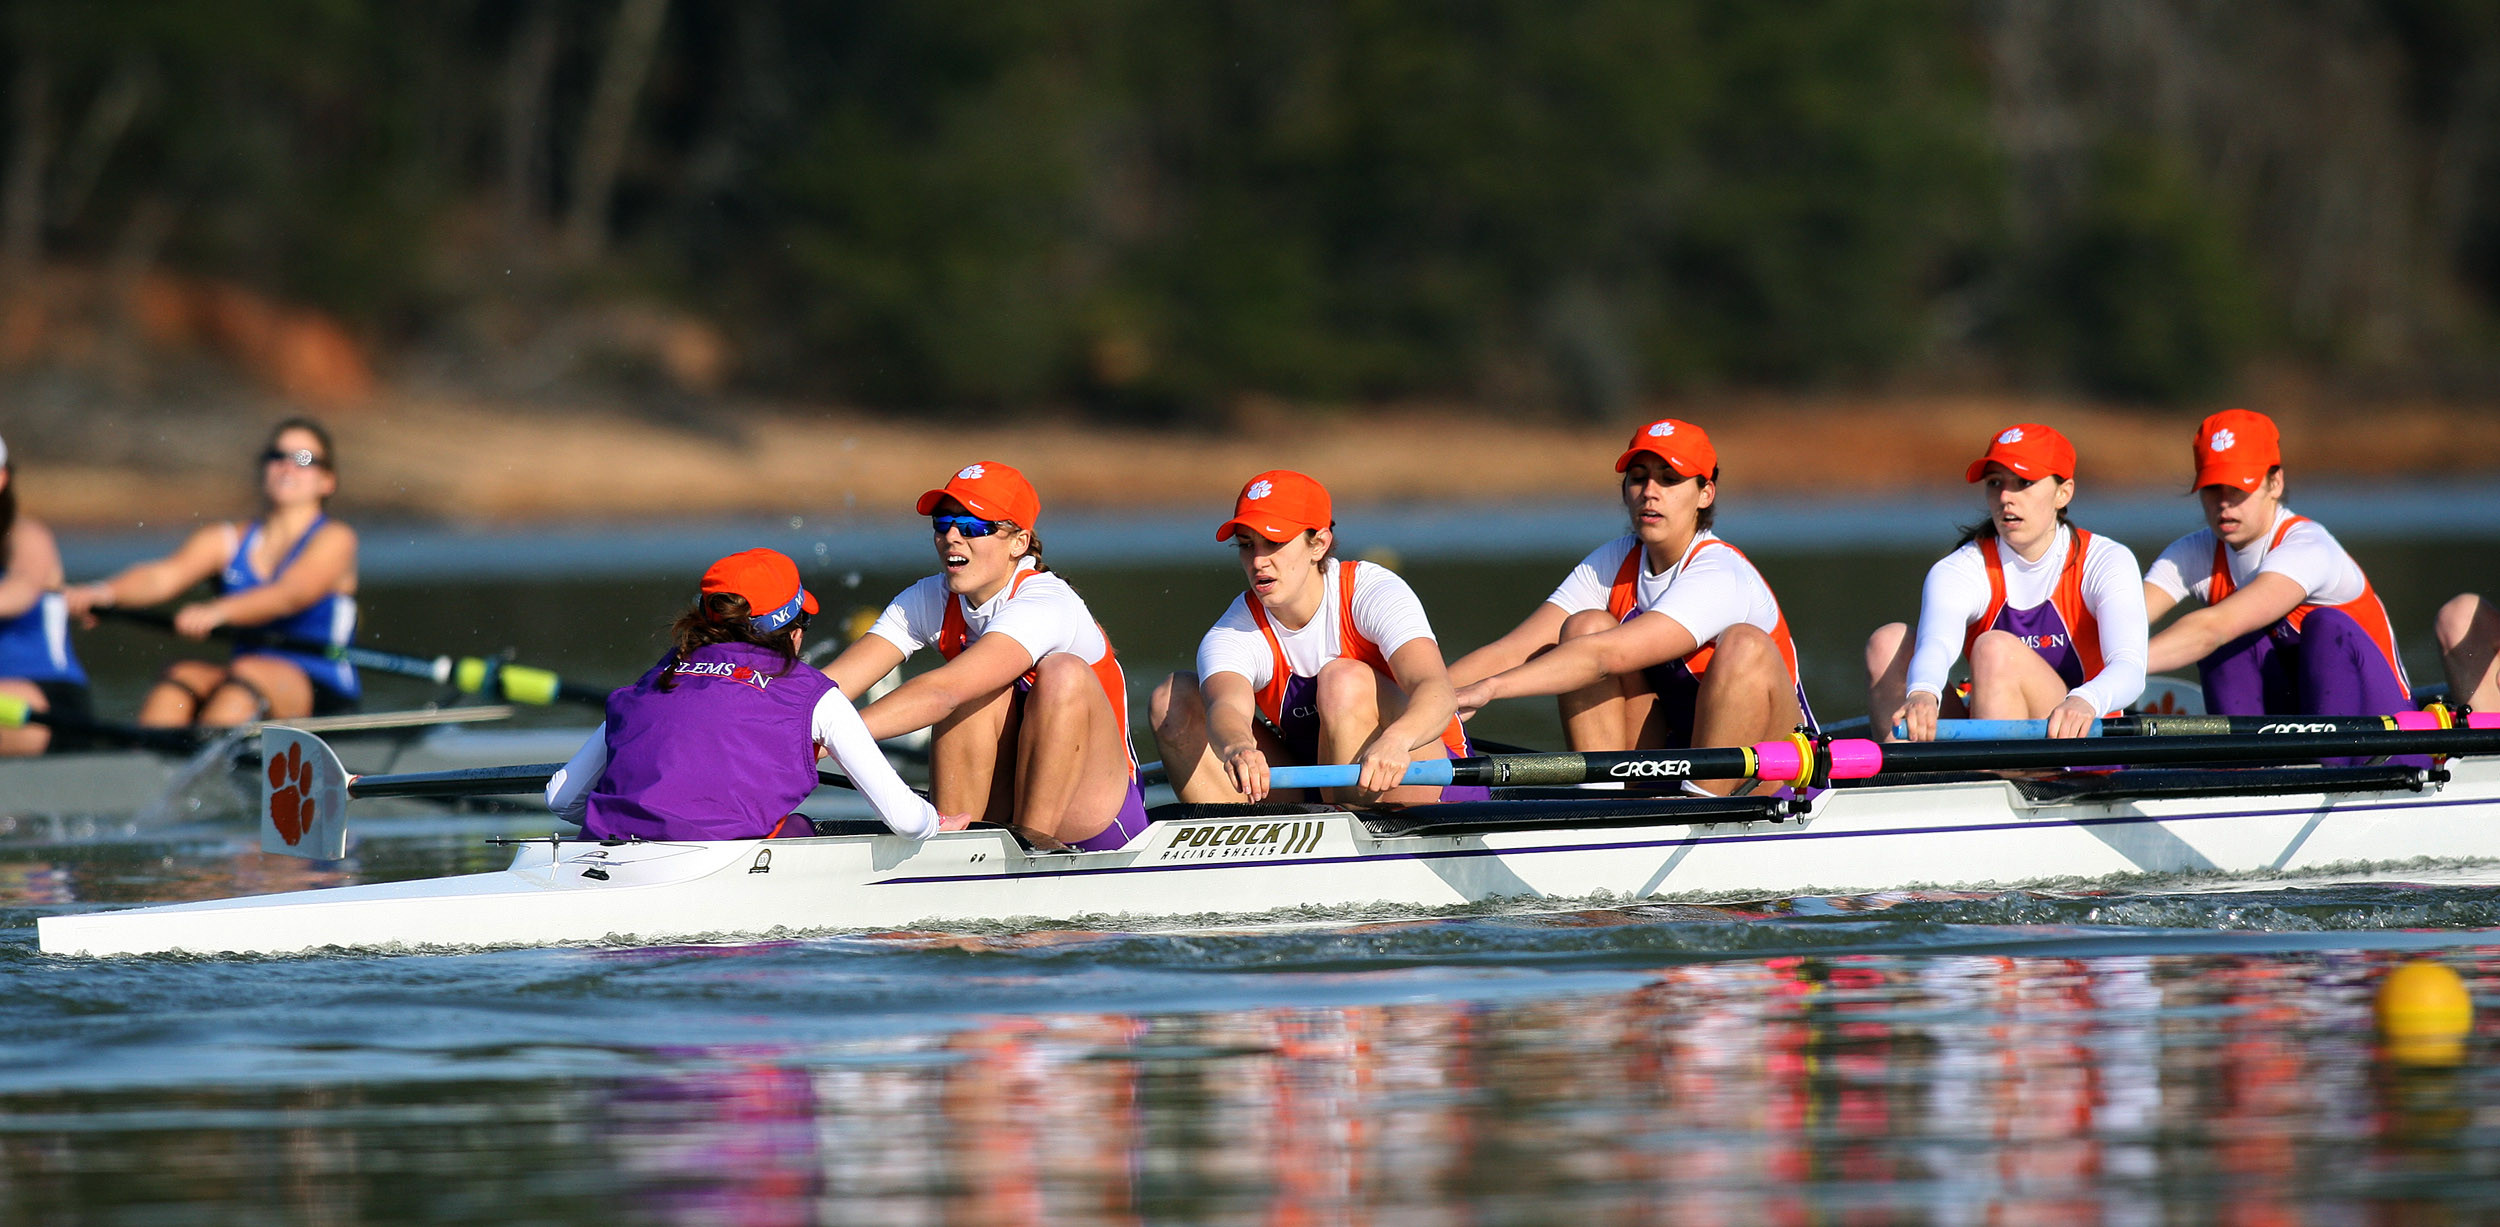 Clemson Rowing Records Strong Performance on Saturday